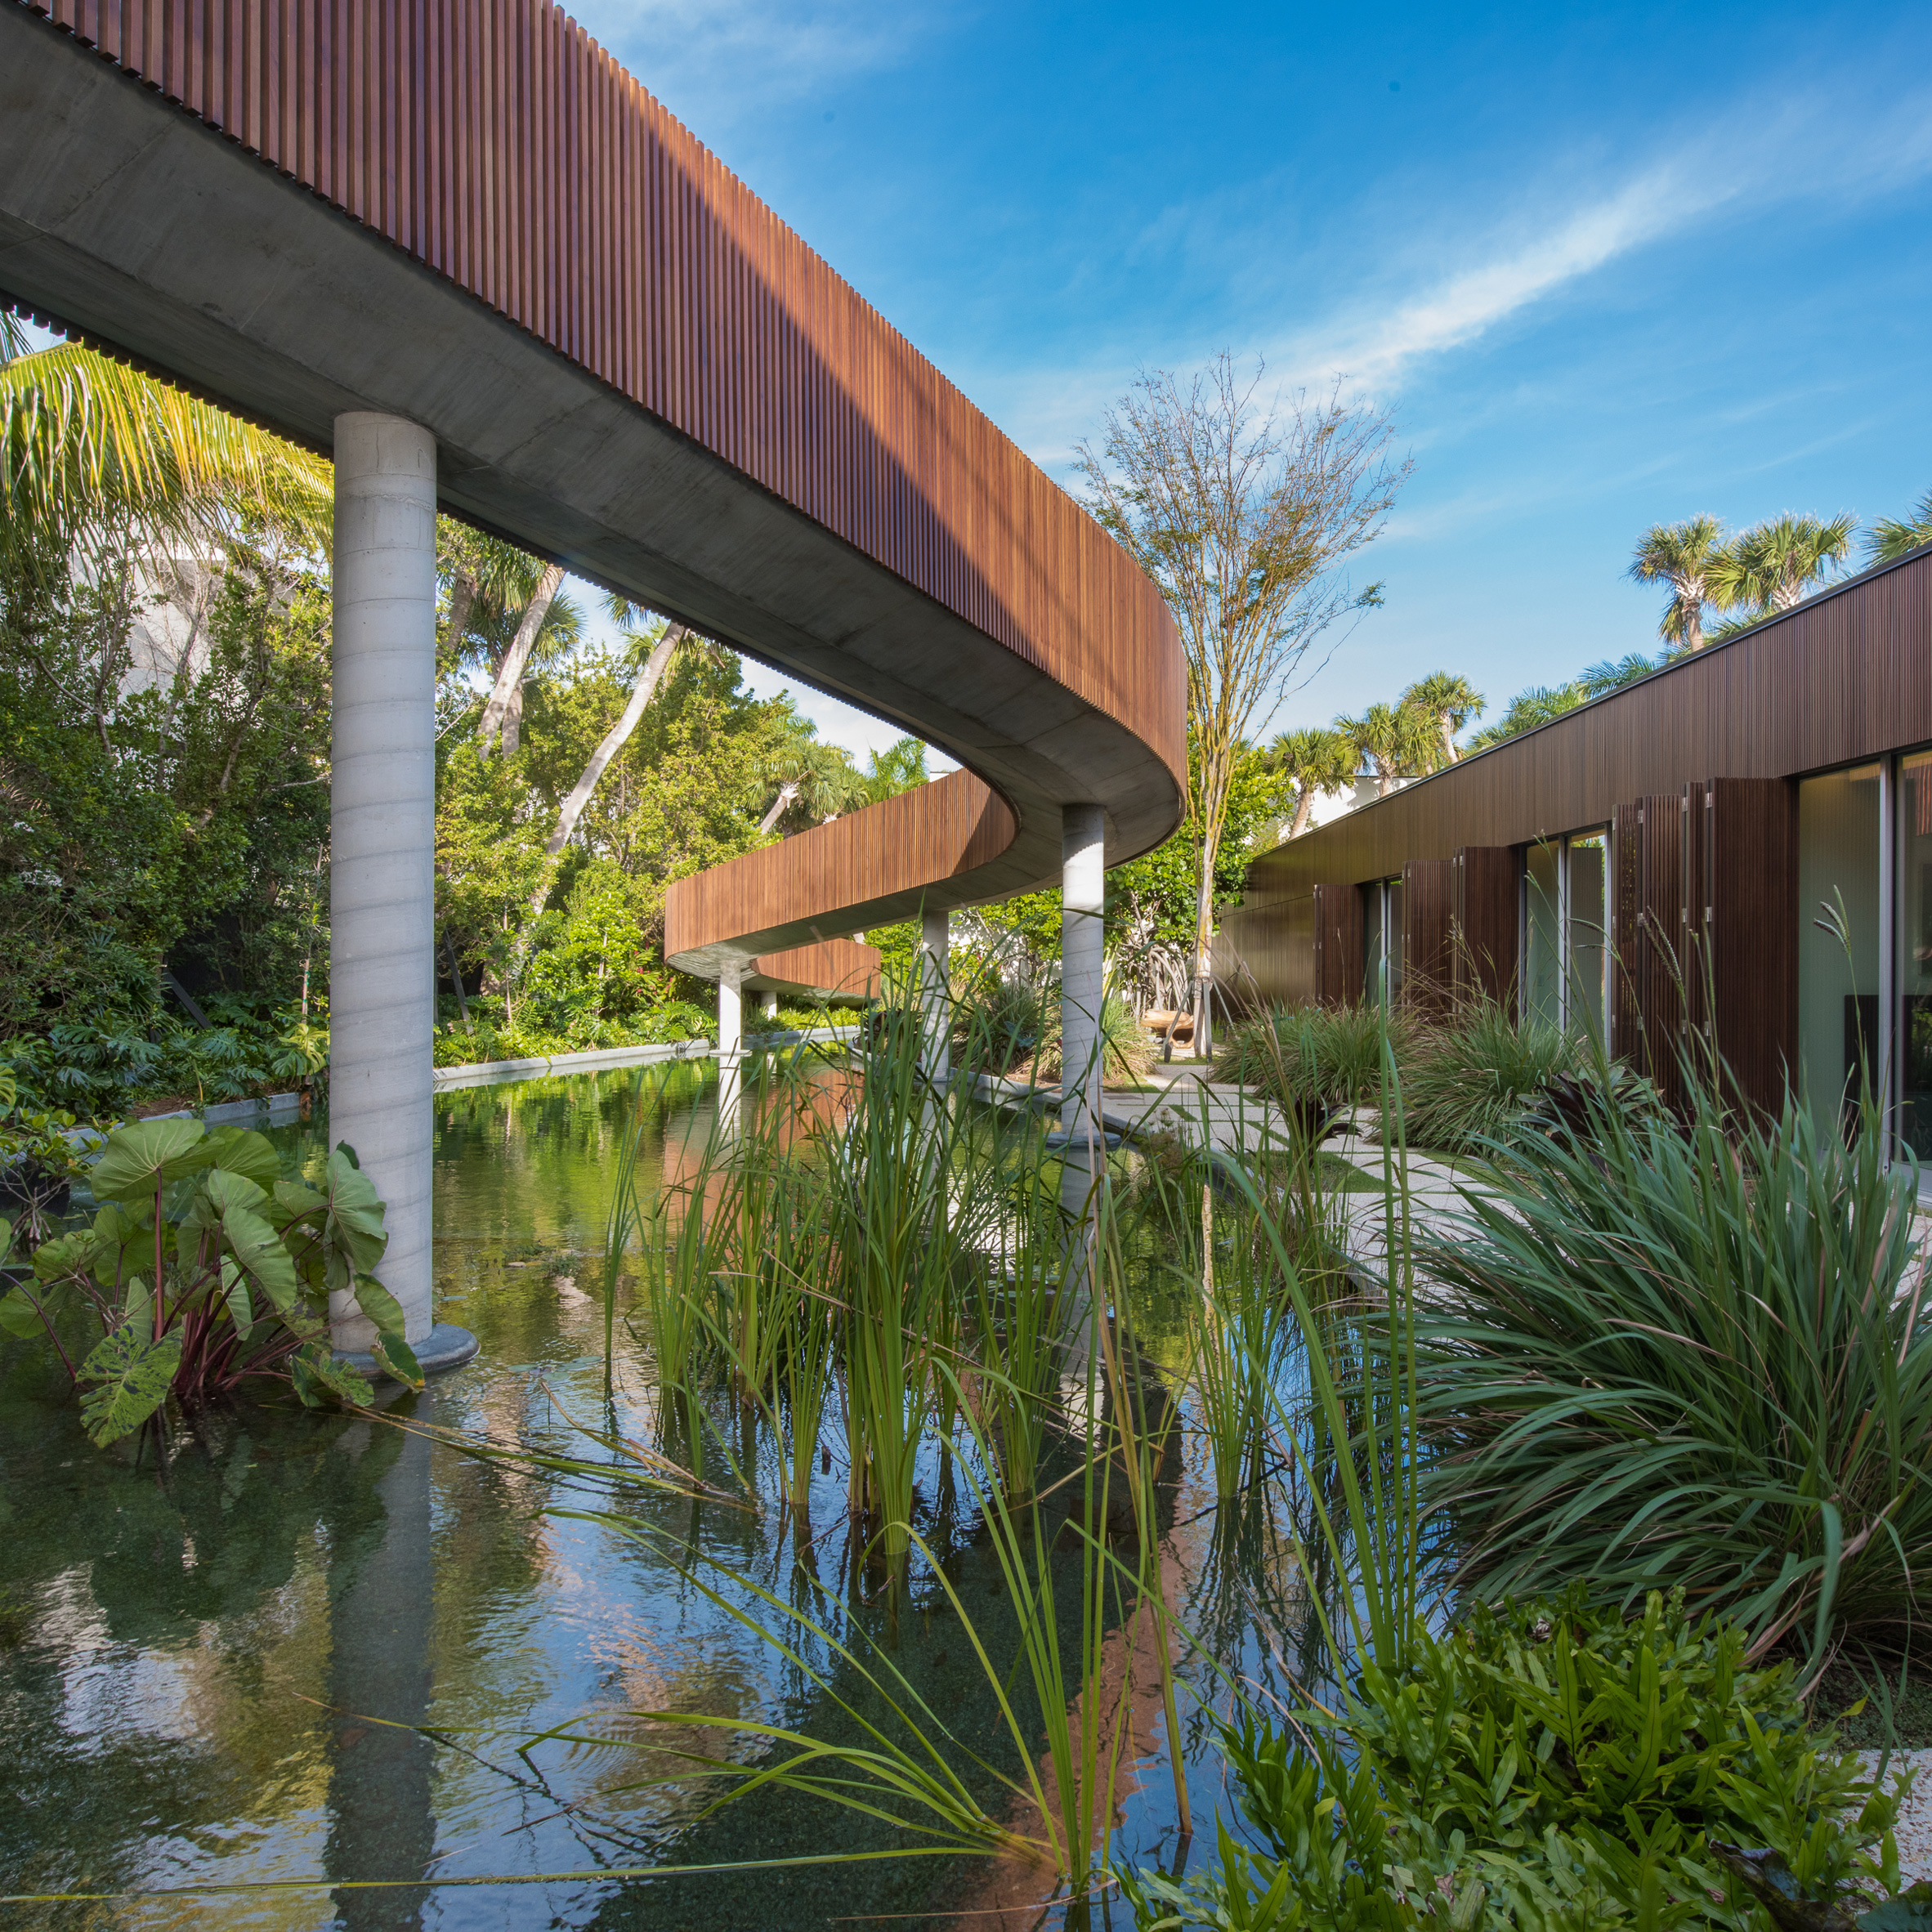 Architectural swimming pools: 4567 Pine Tree Drive by Studio MK27